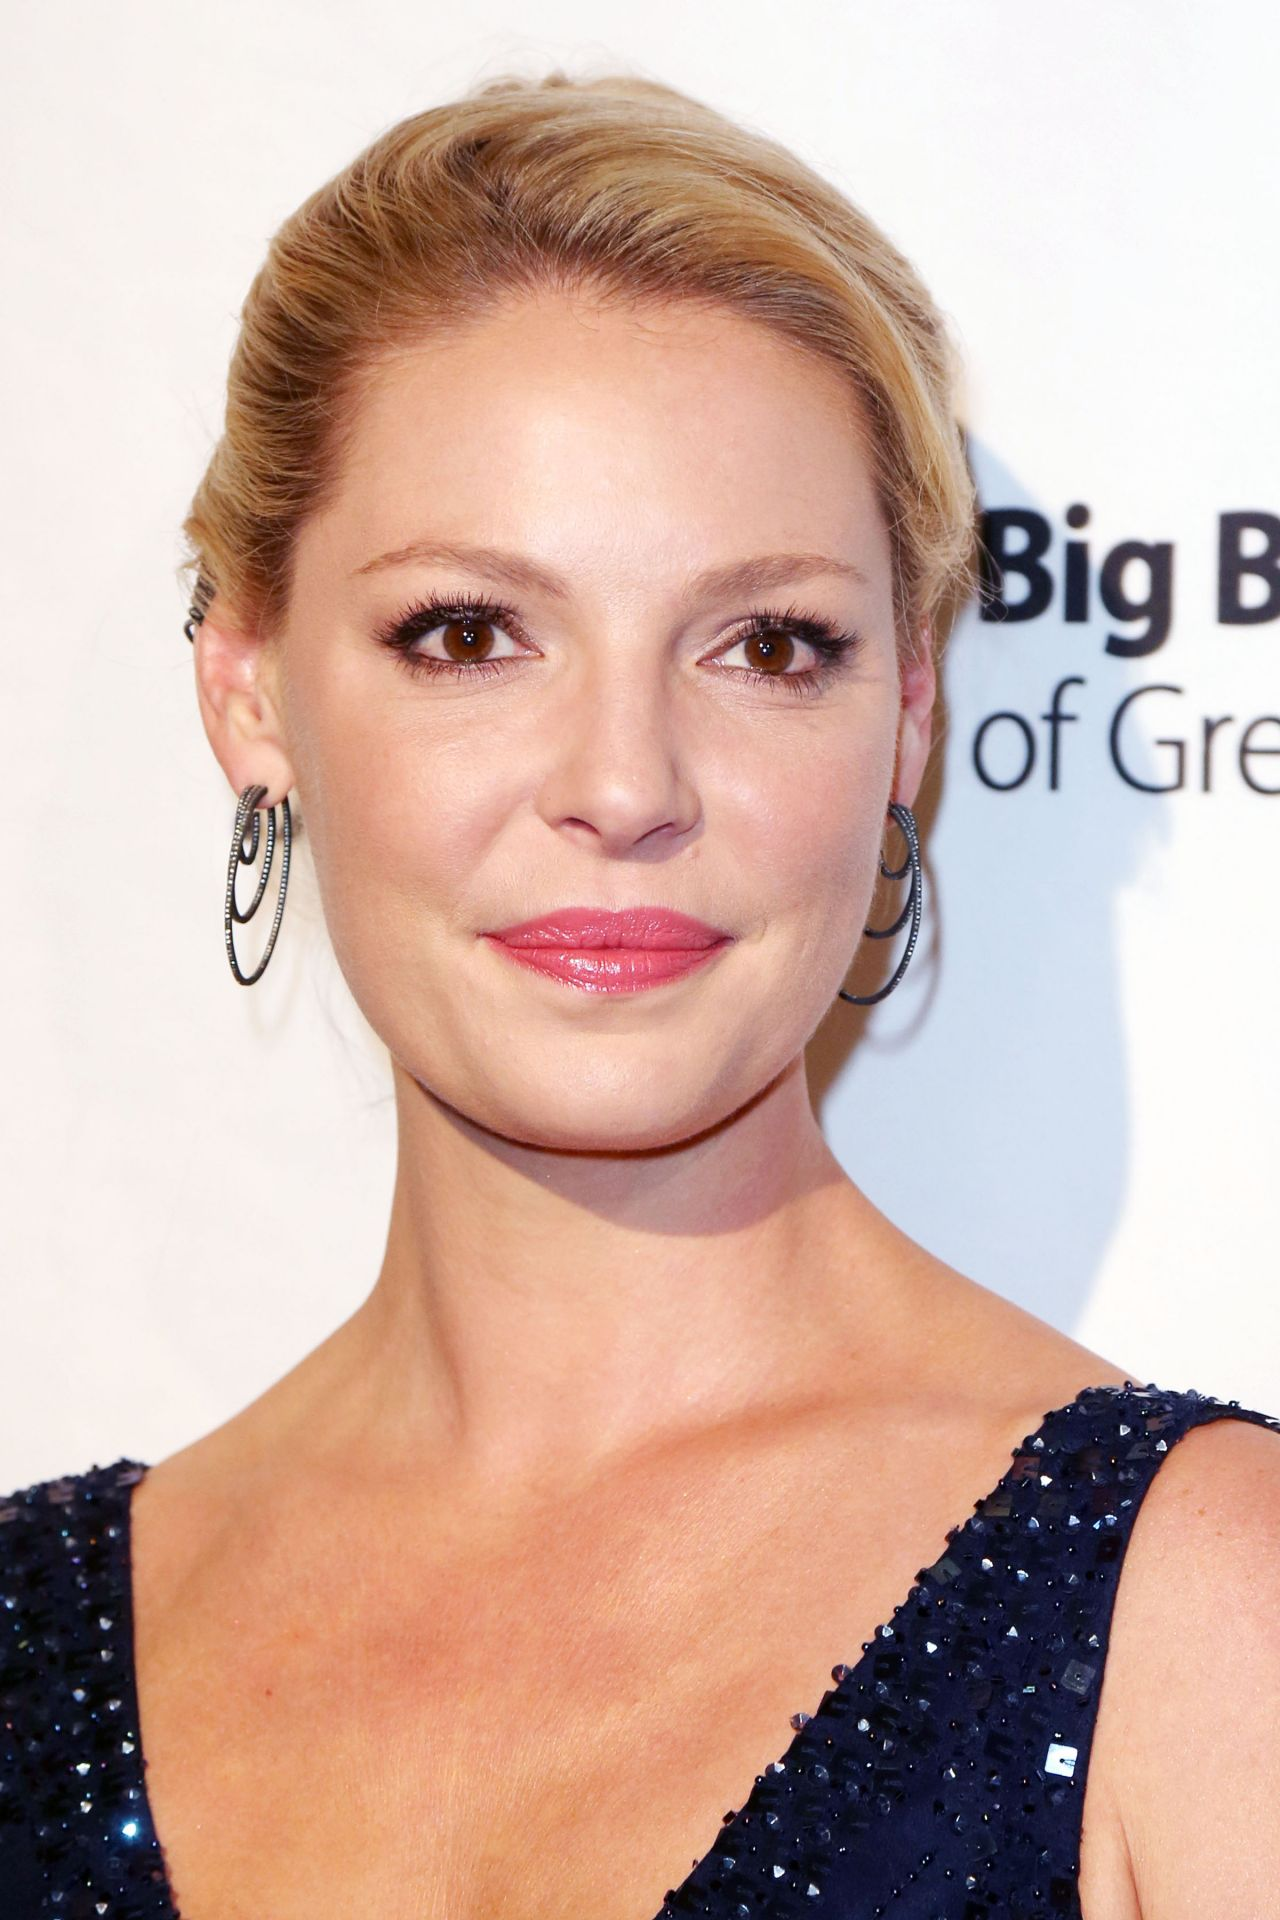 Katherine Heigl - Big Brother Big Sister Big Bash in Beverly Hills - October 2014